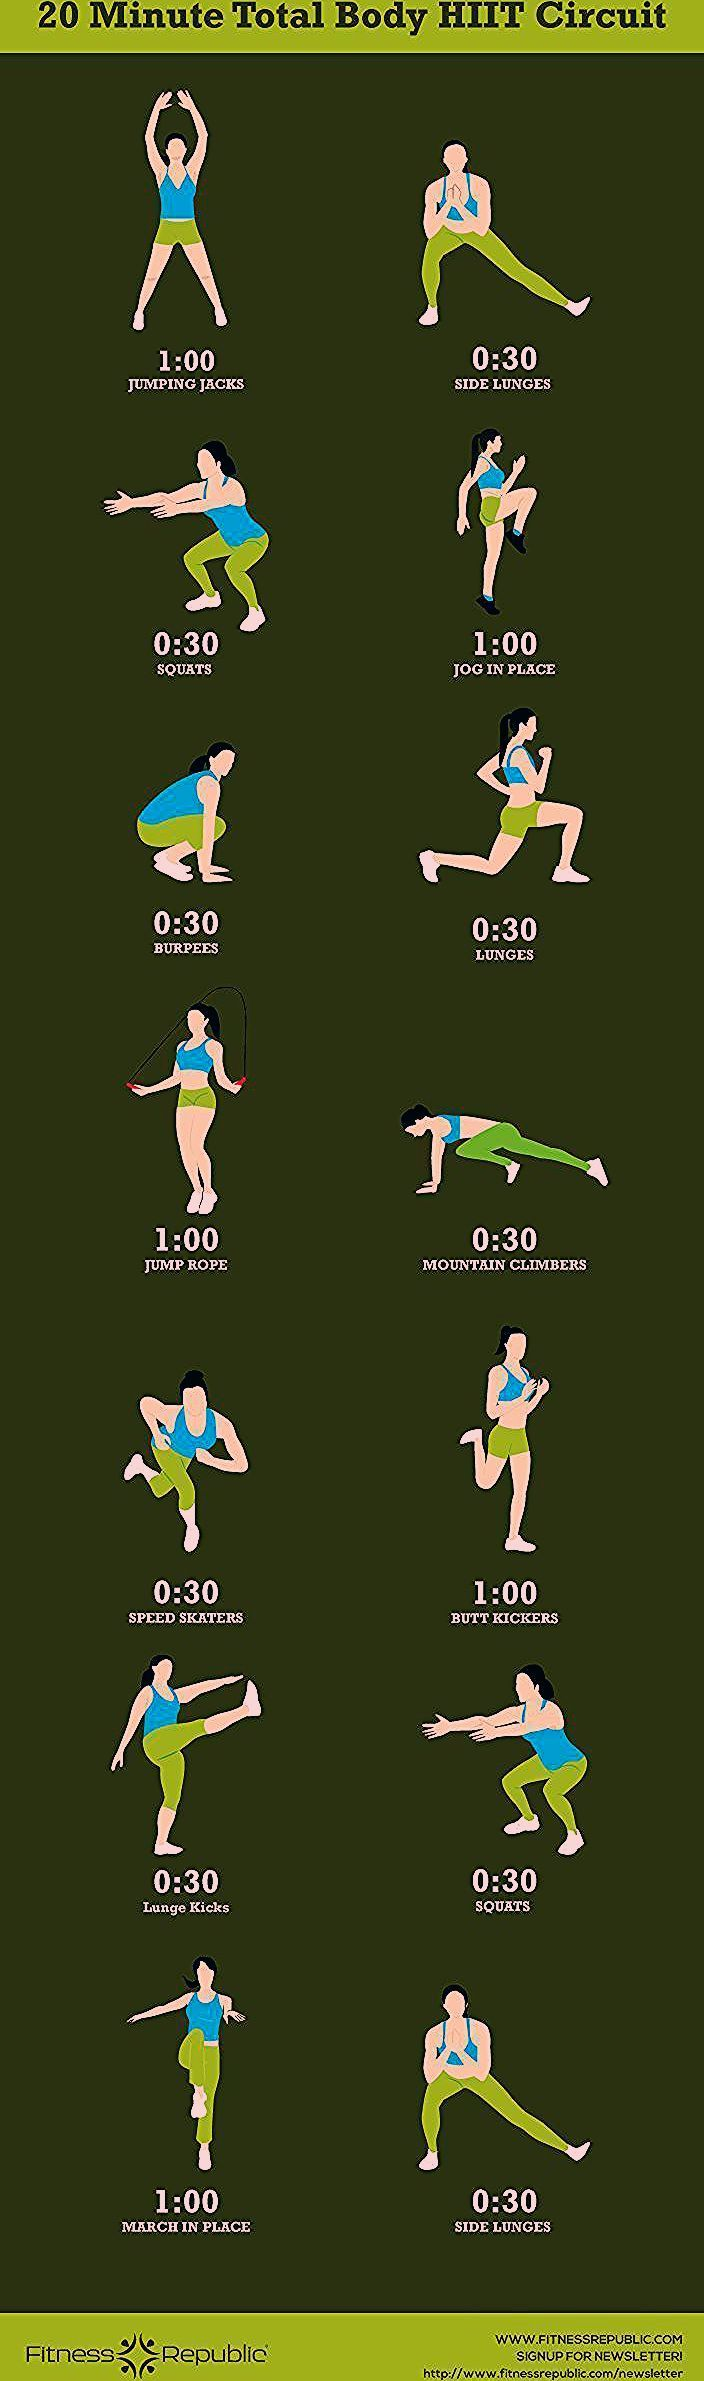 Fitness Motivation : 20-Minute Total Body HIIT Circuit - #20Minute #Body #circuit #Fitness #HIIT #Mo...